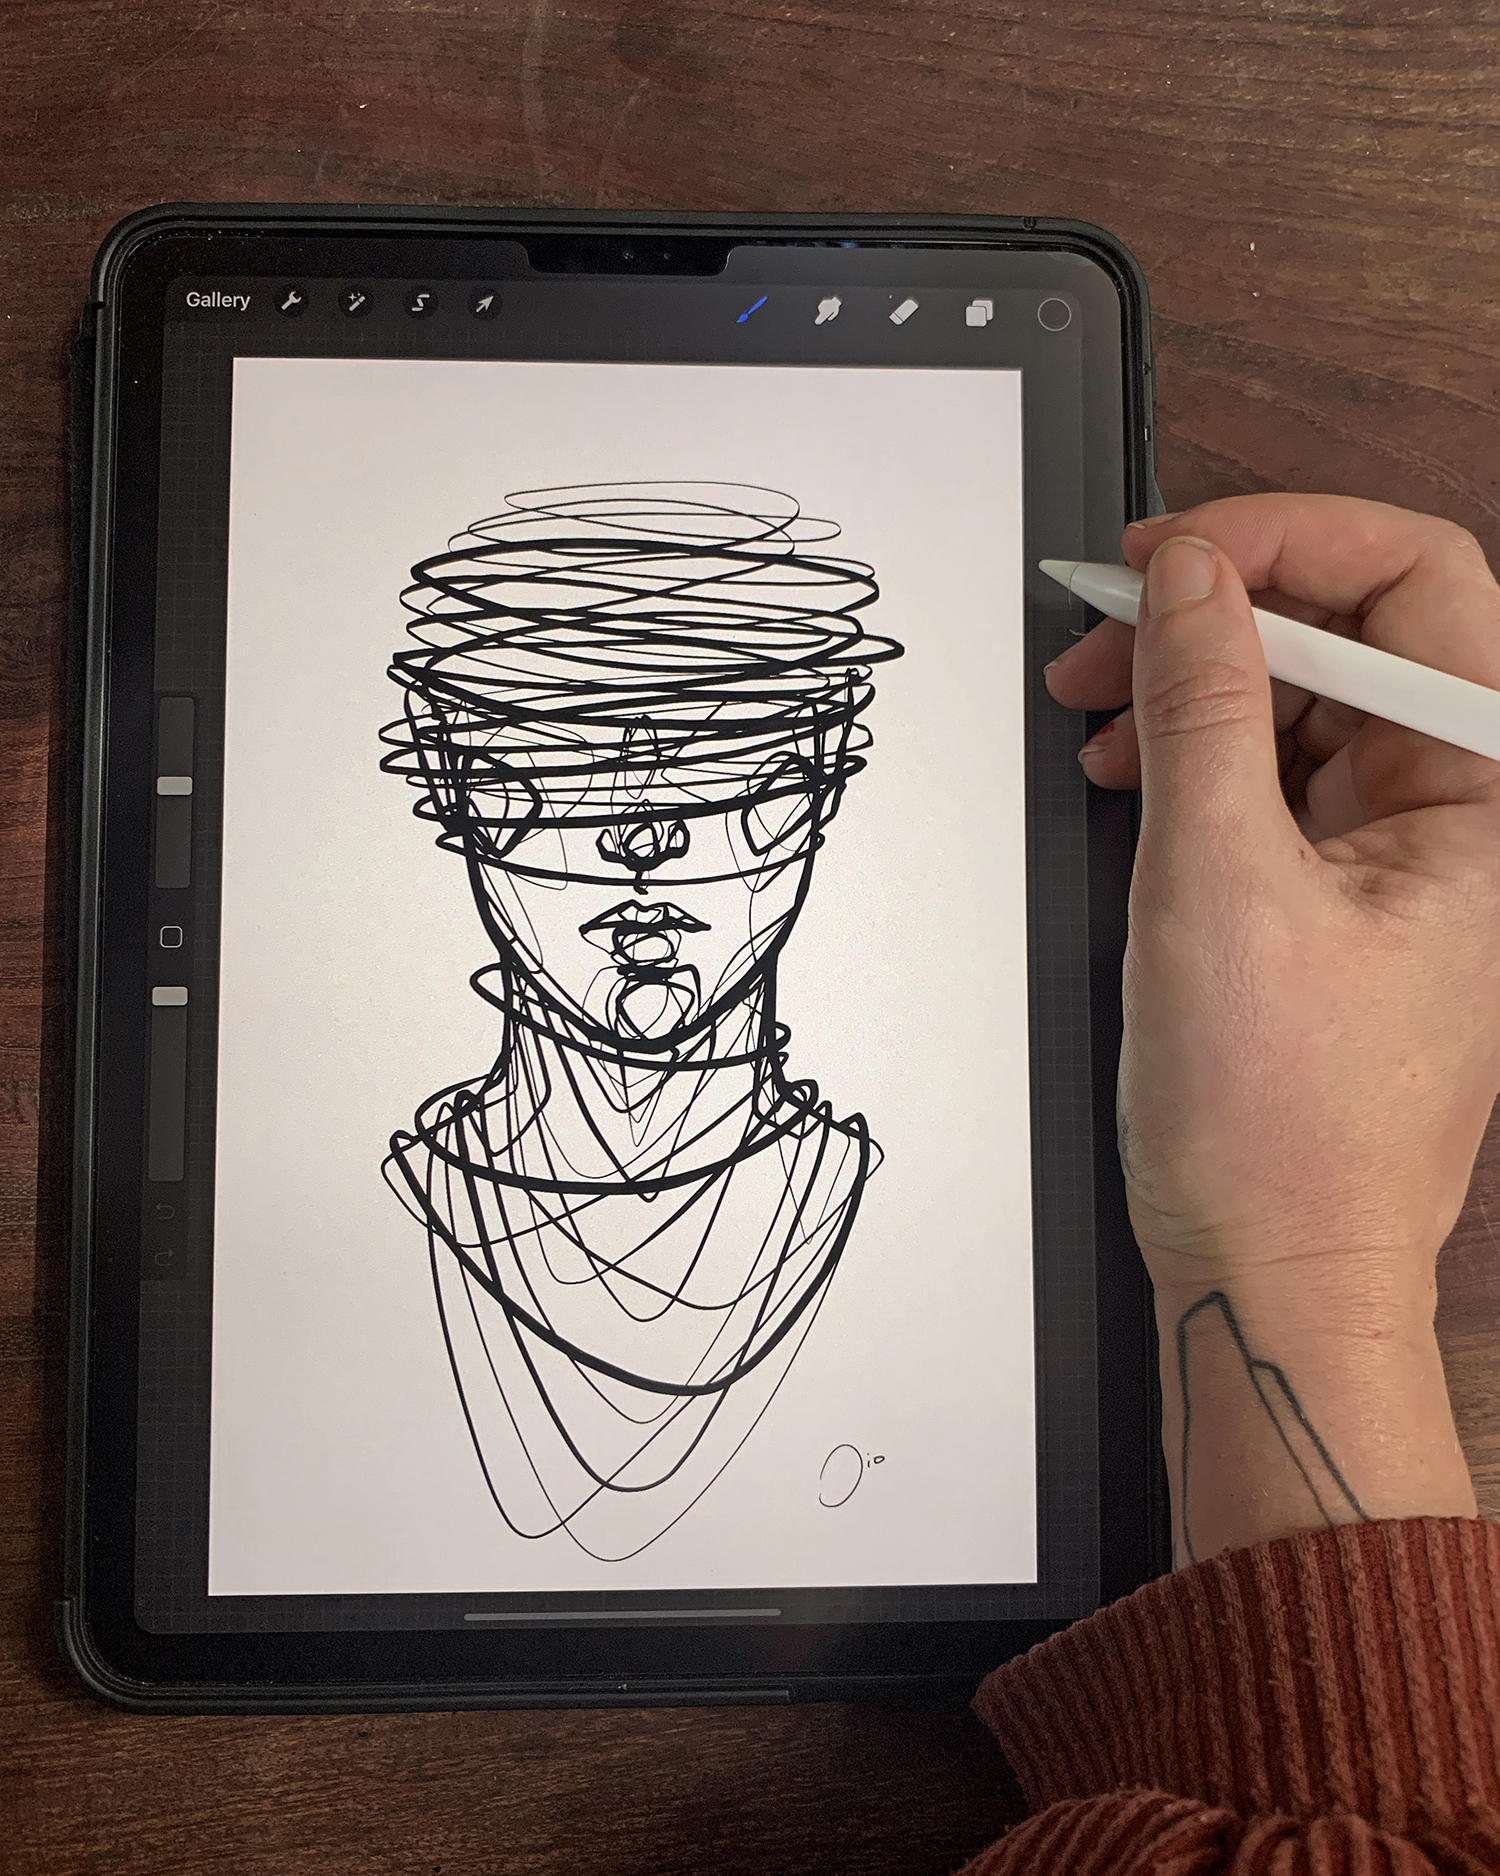 tattoo drawing, face on ipad, tablet by jio maia